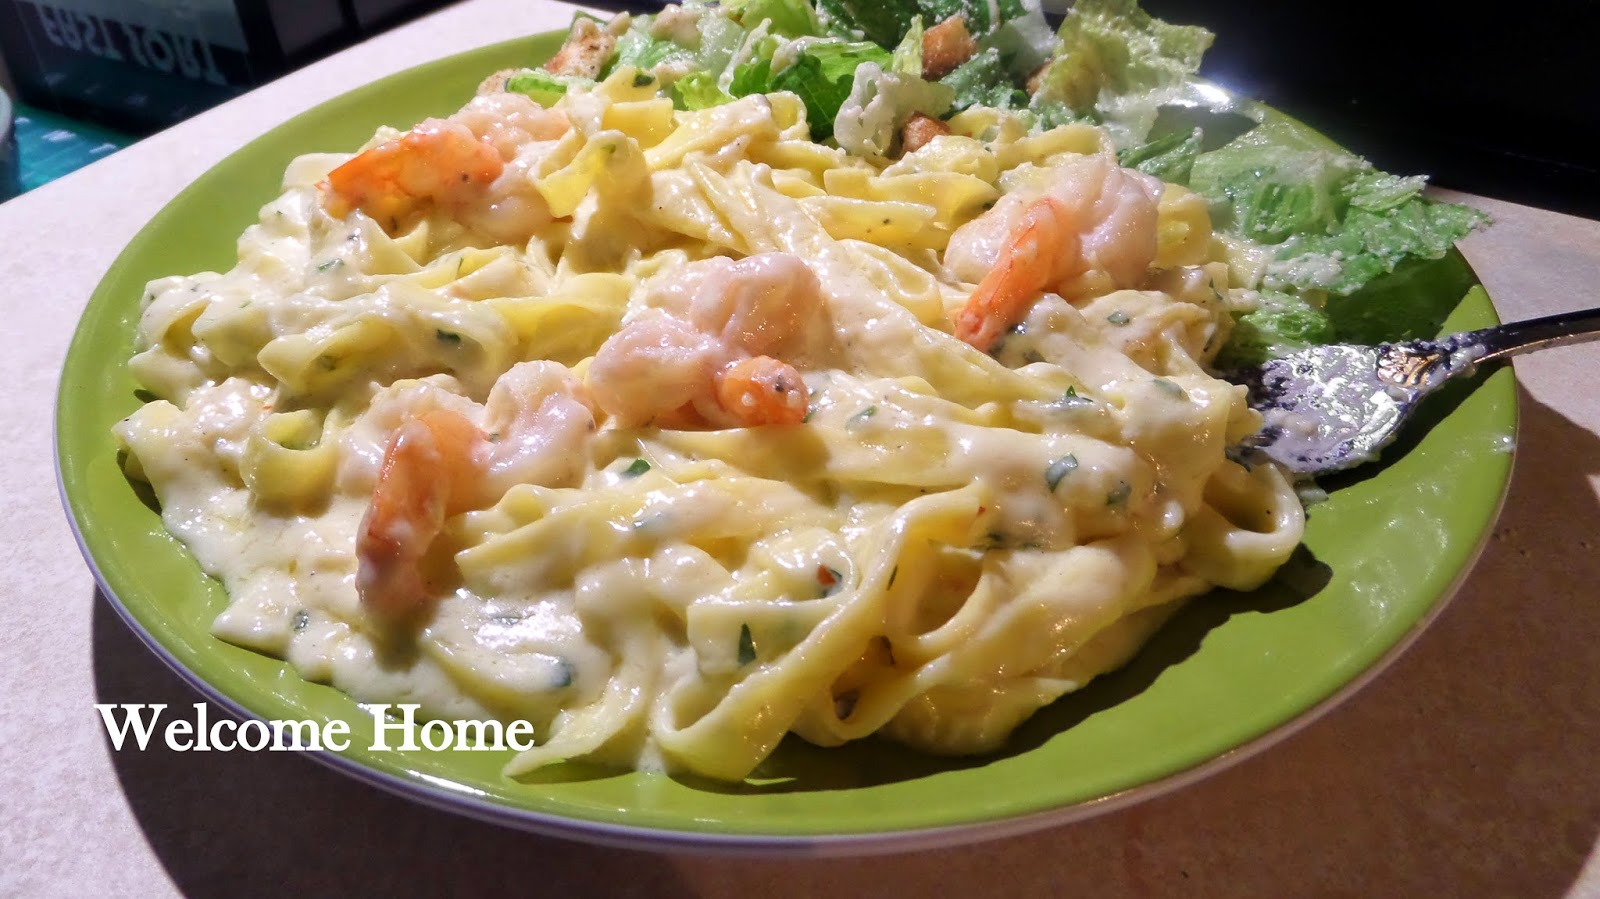 Welcome Home Blog: ♥ Fettuccine Alfredo with Shrimp